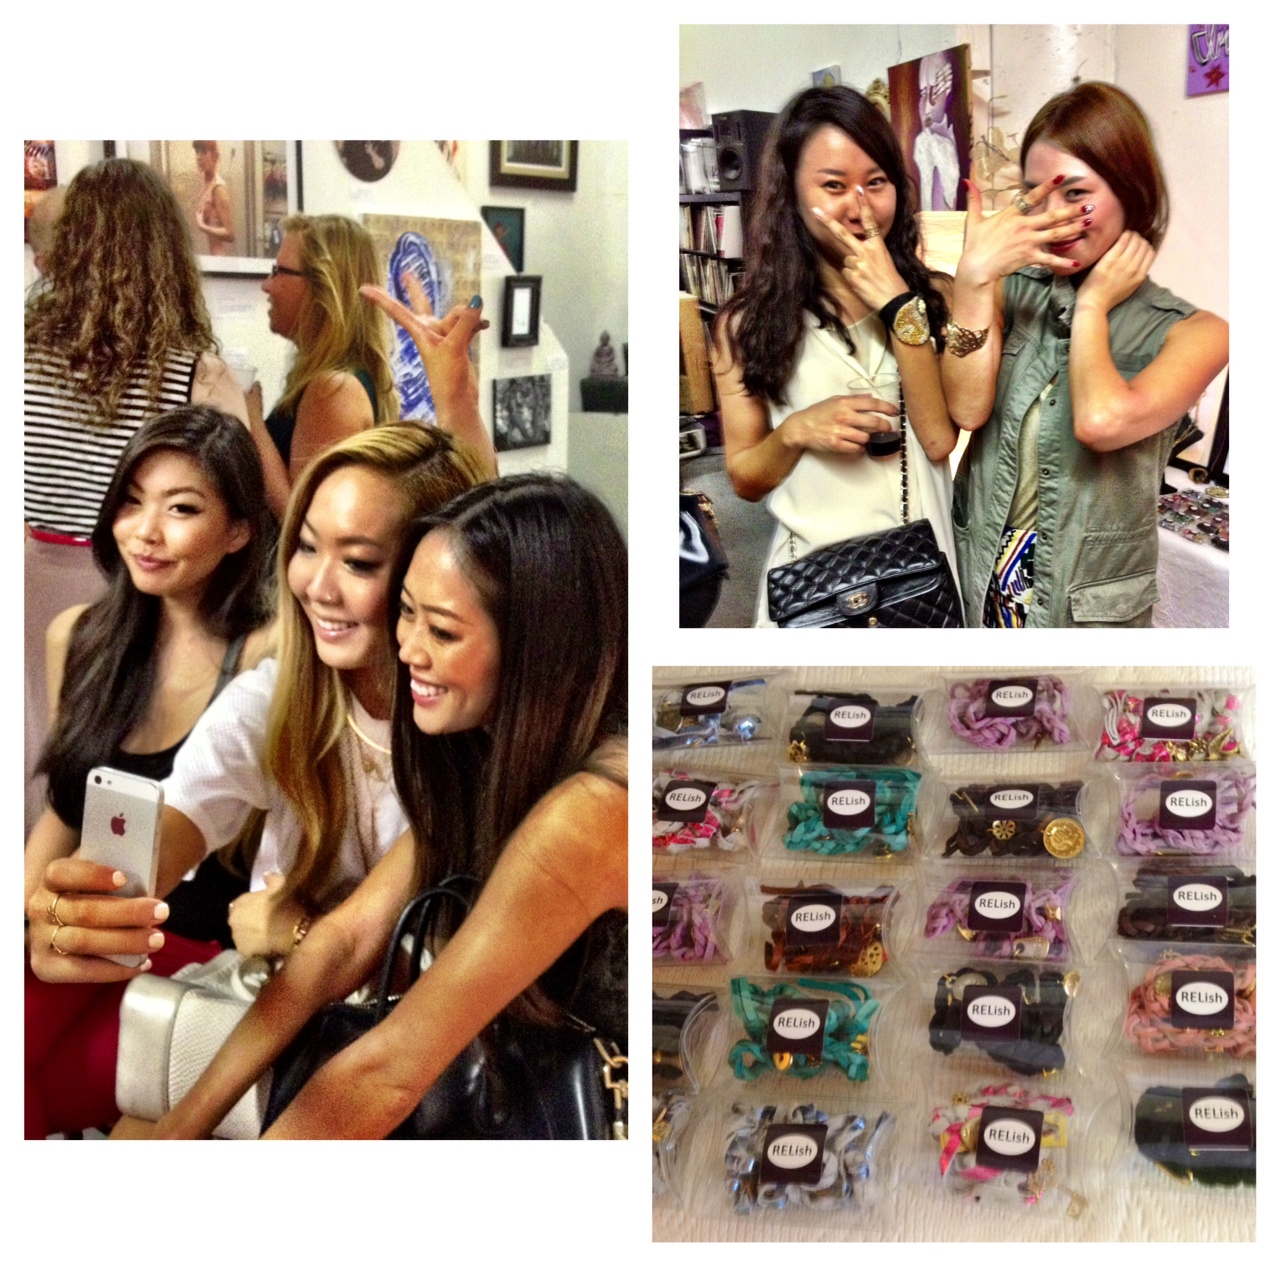 """I had so much fun selling RELish By Arielle accessories like these one-of-a-kind """"RELish Your Charms"""" bracelets sold in pillow boxes.  Above, some gallery-goers showcase their new RELish rings."""